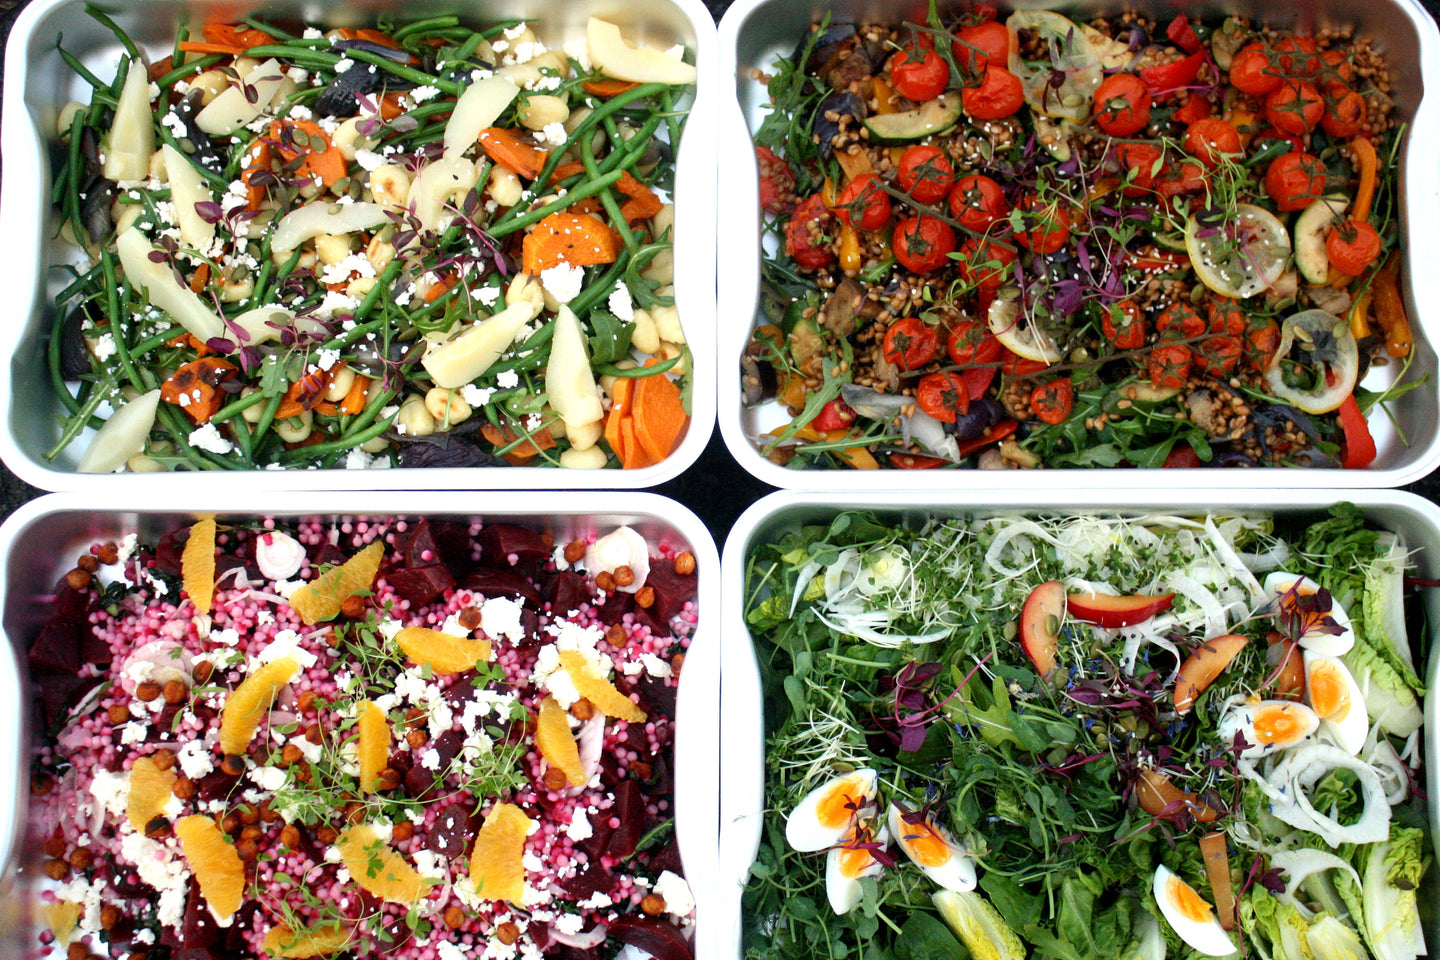 Bristol corporate catering. Healthy catering